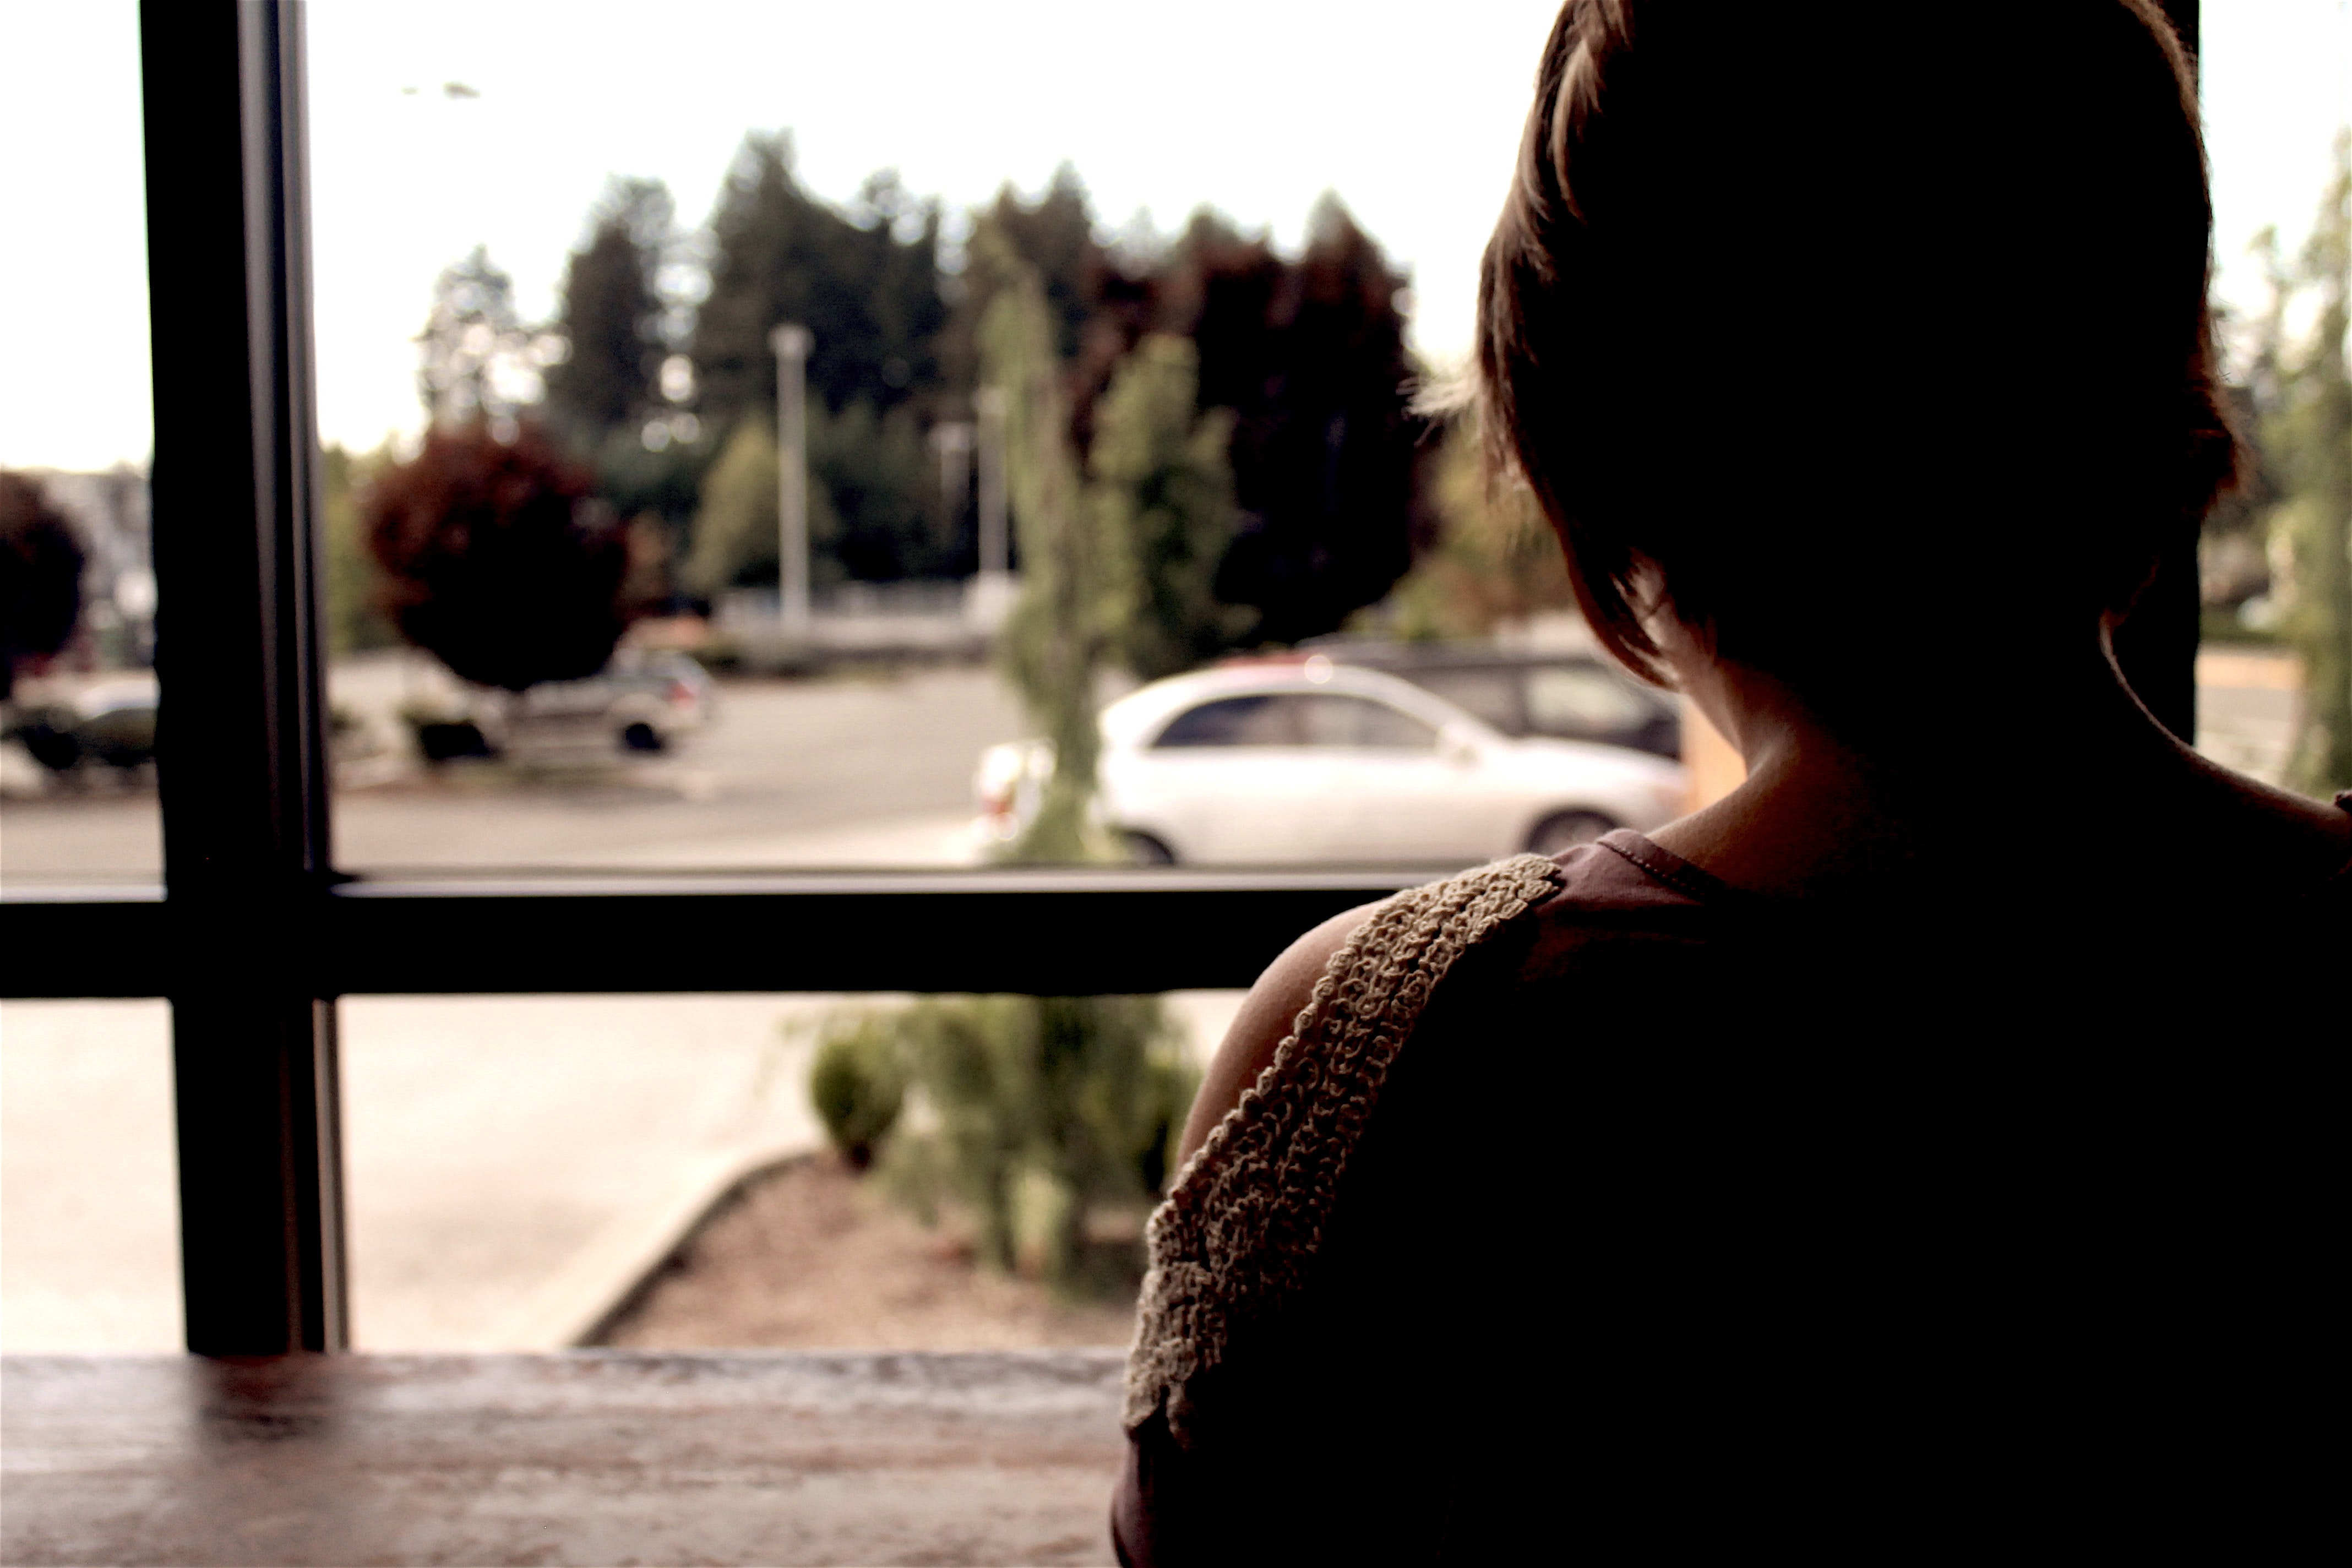 Person sitting at a cafe ledge looking out the window